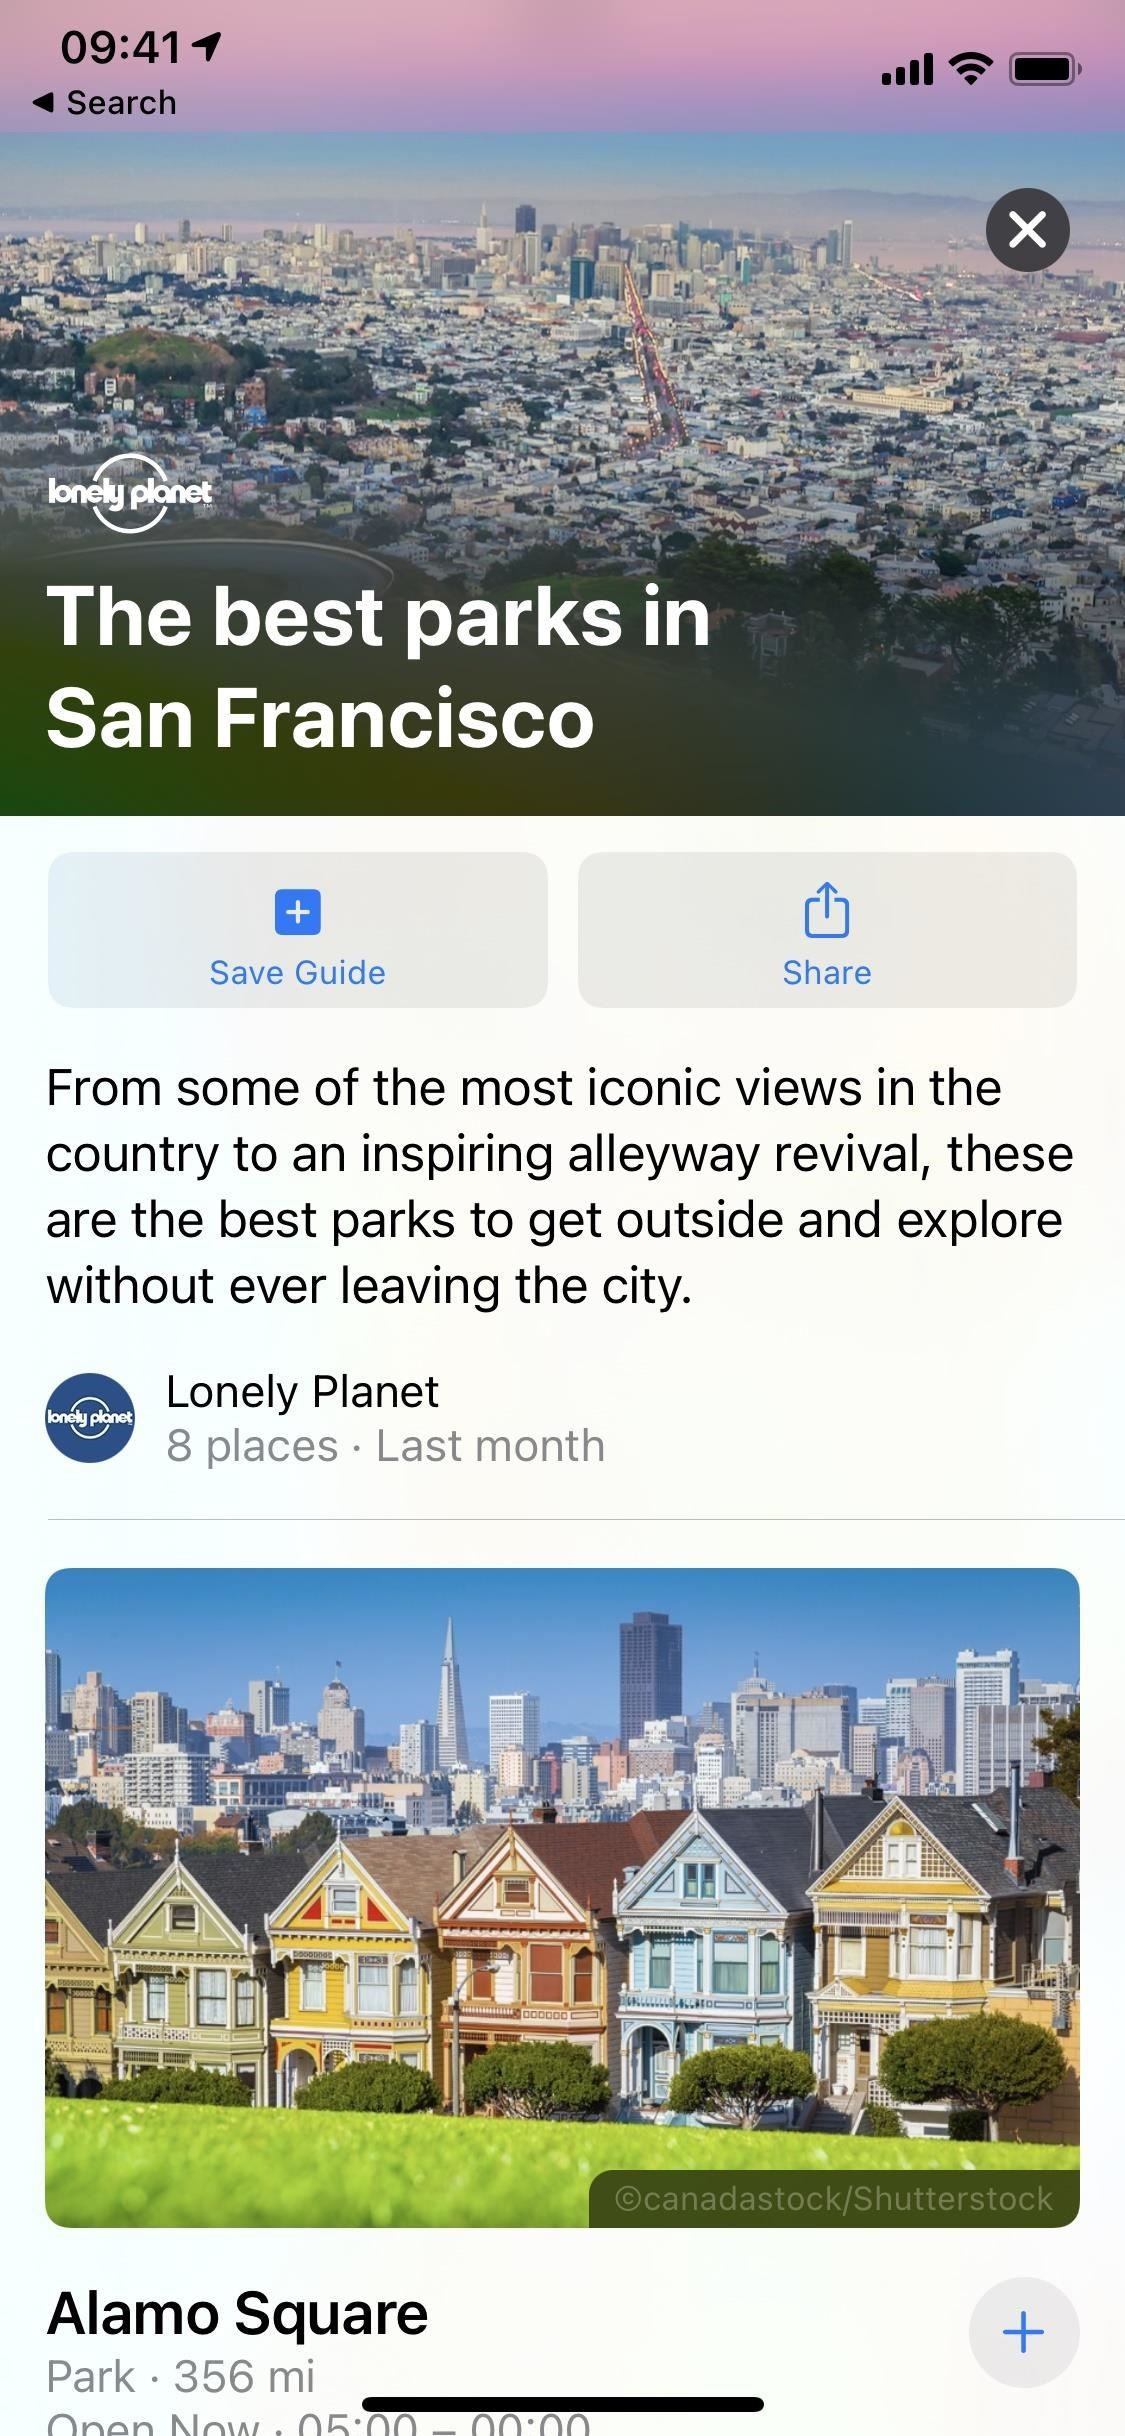 See Nearby Recommendations from Brands via Curated City Guides in iOS 14's Apple Maps